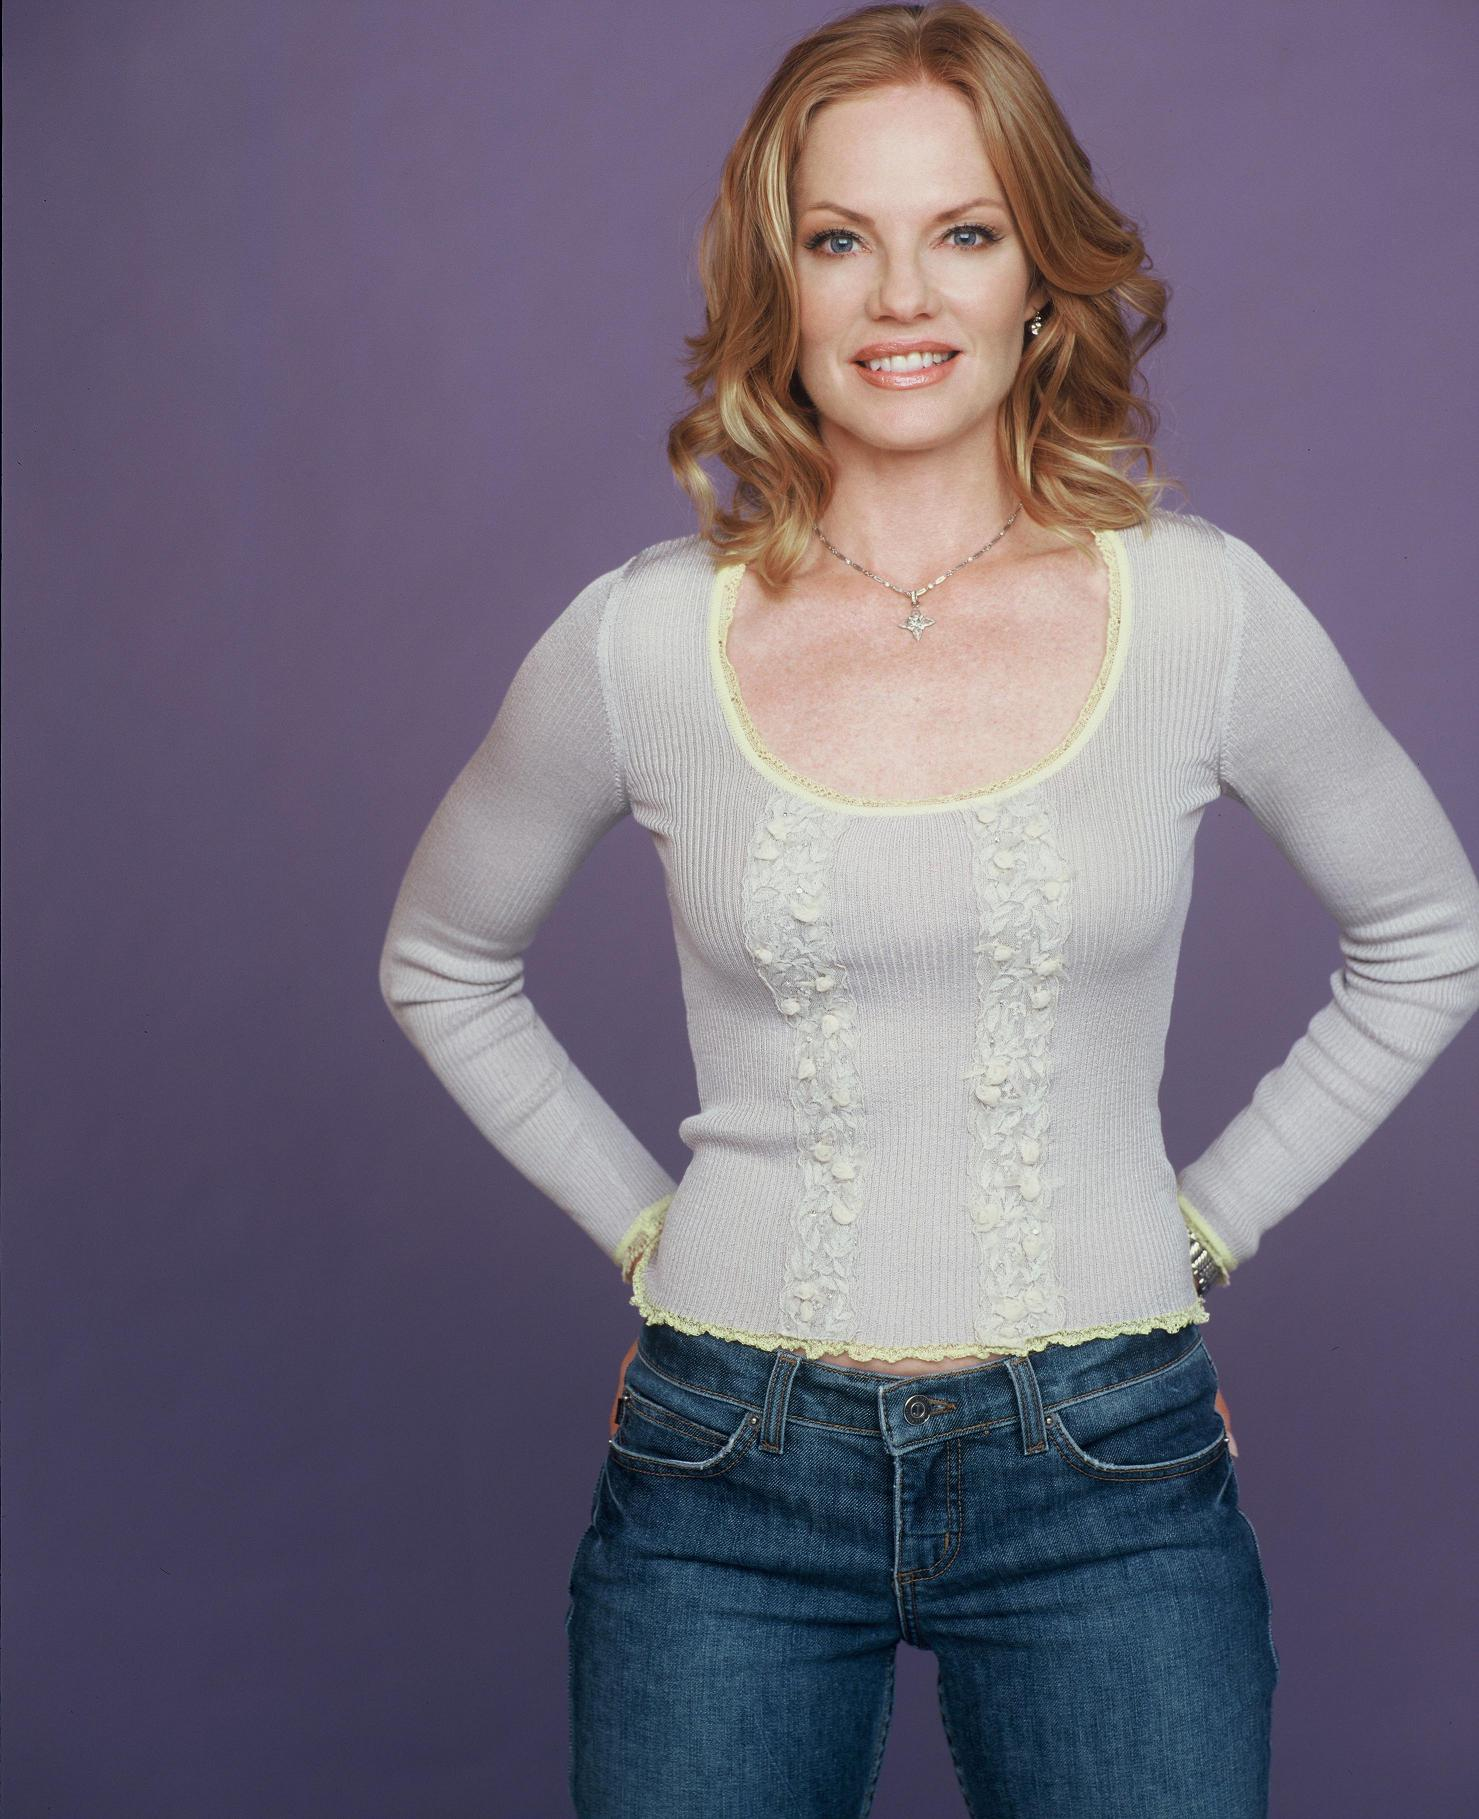 marg helgenberger instagrammarg helgenberger facebook, marg helgenberger csi, marg helgenberger pronunciation, marg helgenberger 2002, marg helgenberger 2016, marg helgenberger instagram, marg helgenberger, marg helgenberger net worth, marg helgenberger under the dome, marg helgenberger images, marg helgenberger mr skin